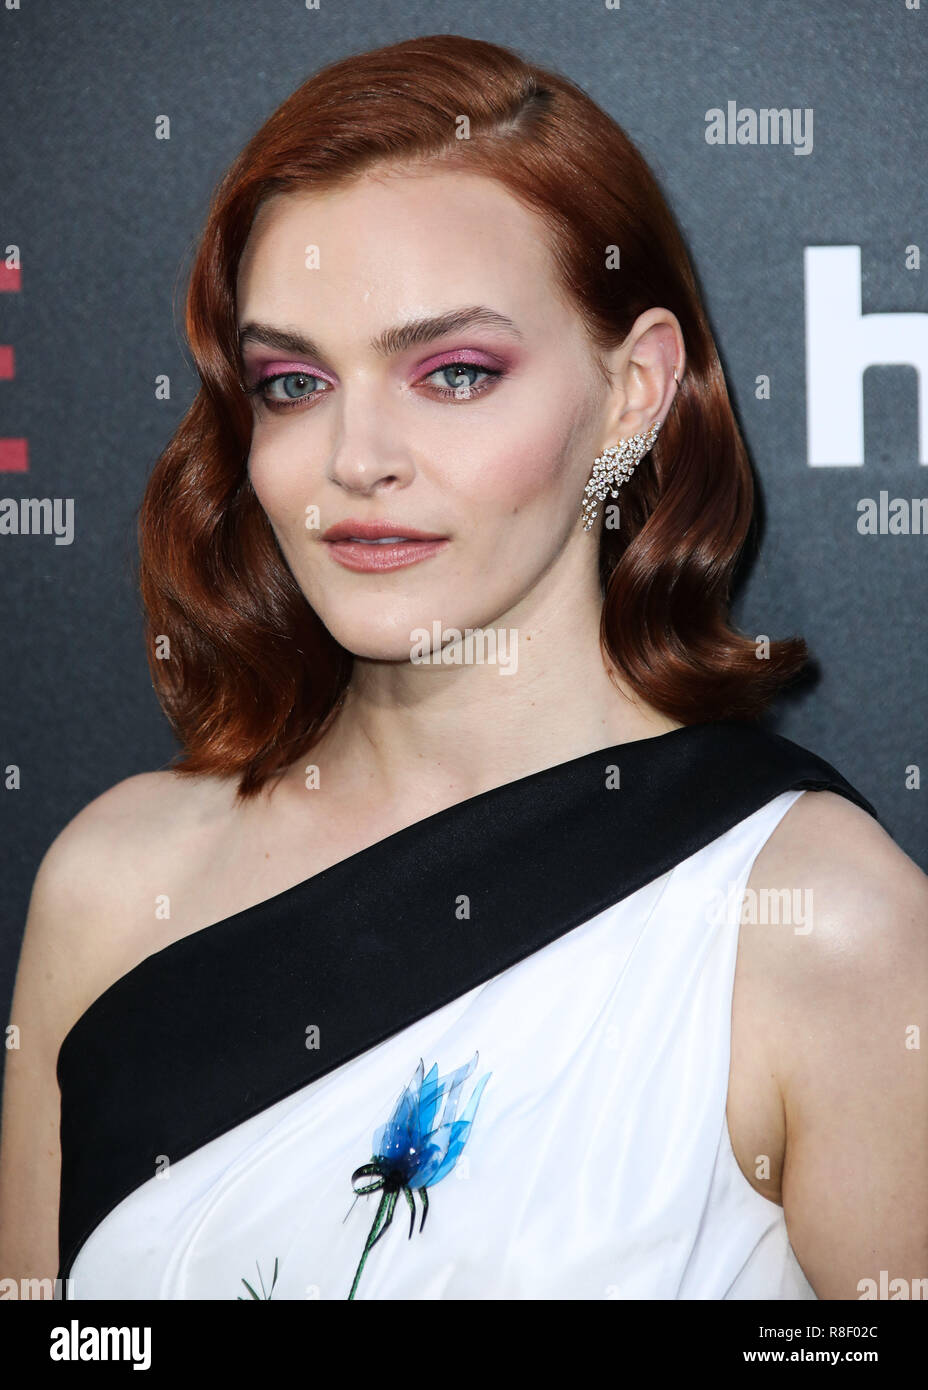 Selfie Madeline Brewer naked (78 photos), Tits, Cleavage, Twitter, in bikini 2015